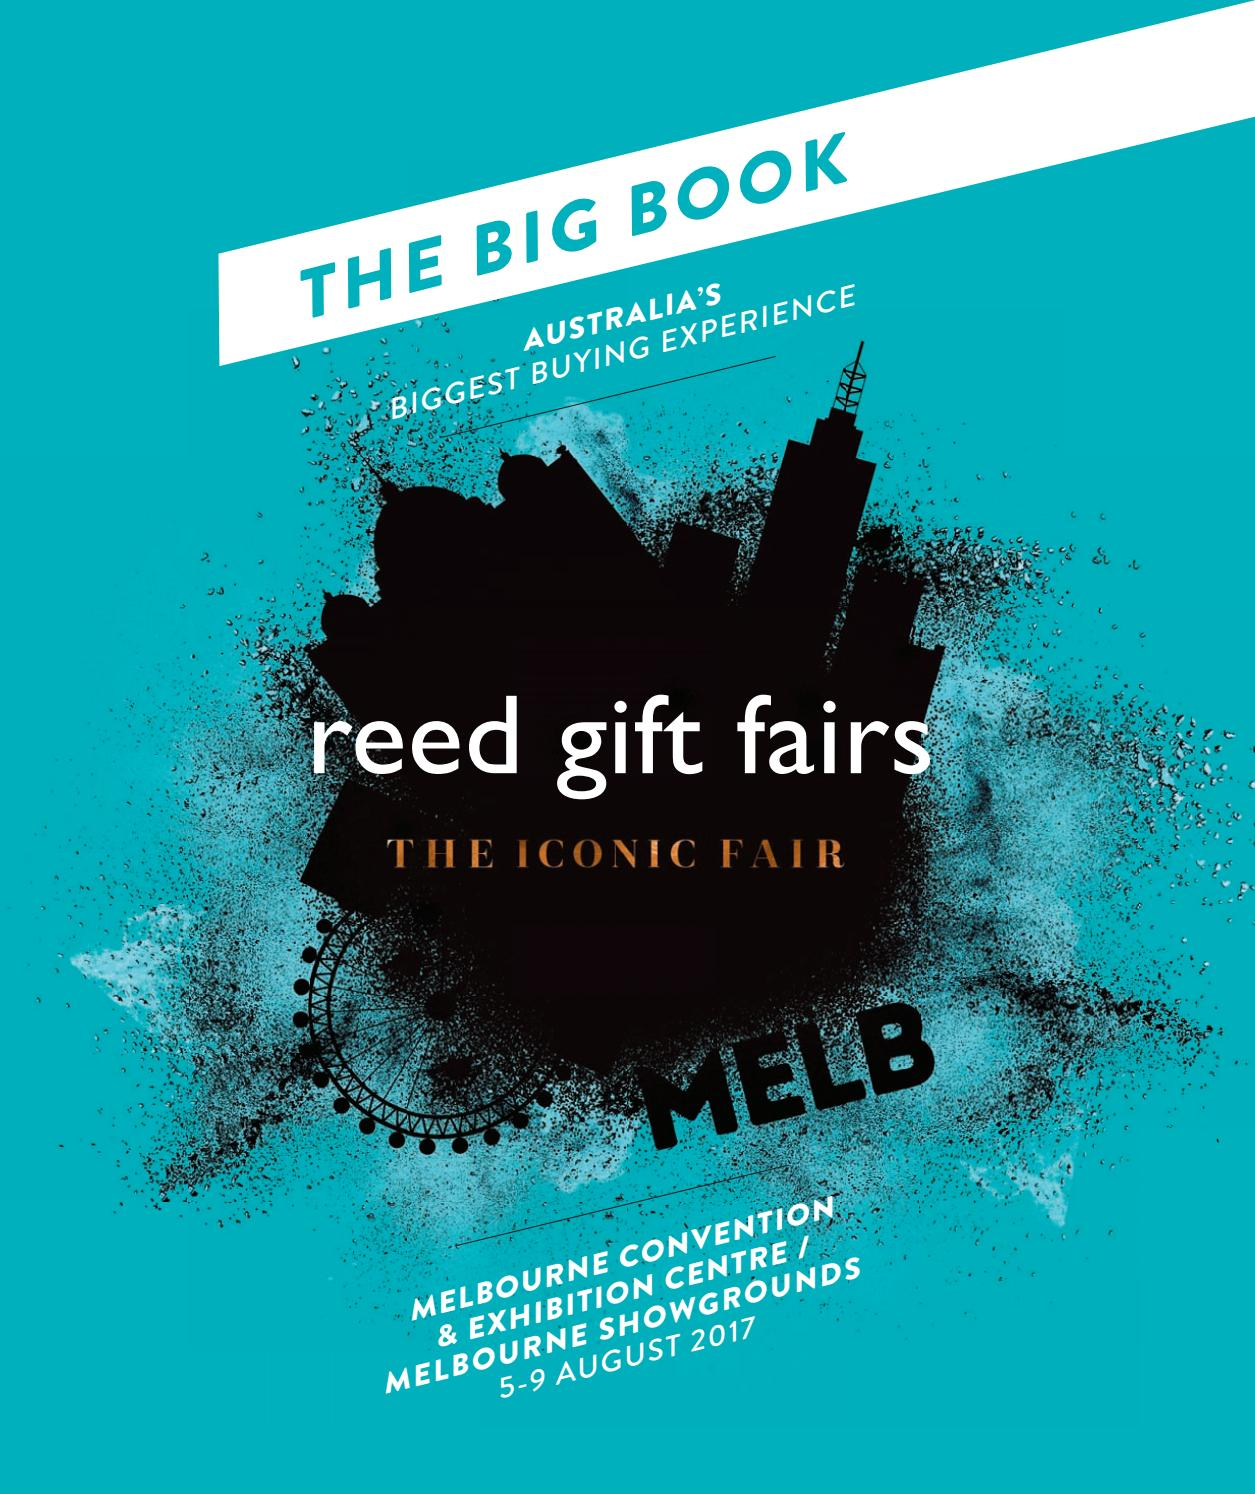 the big book reed gift fairs melbourne august by reed exhibitions australia issuu